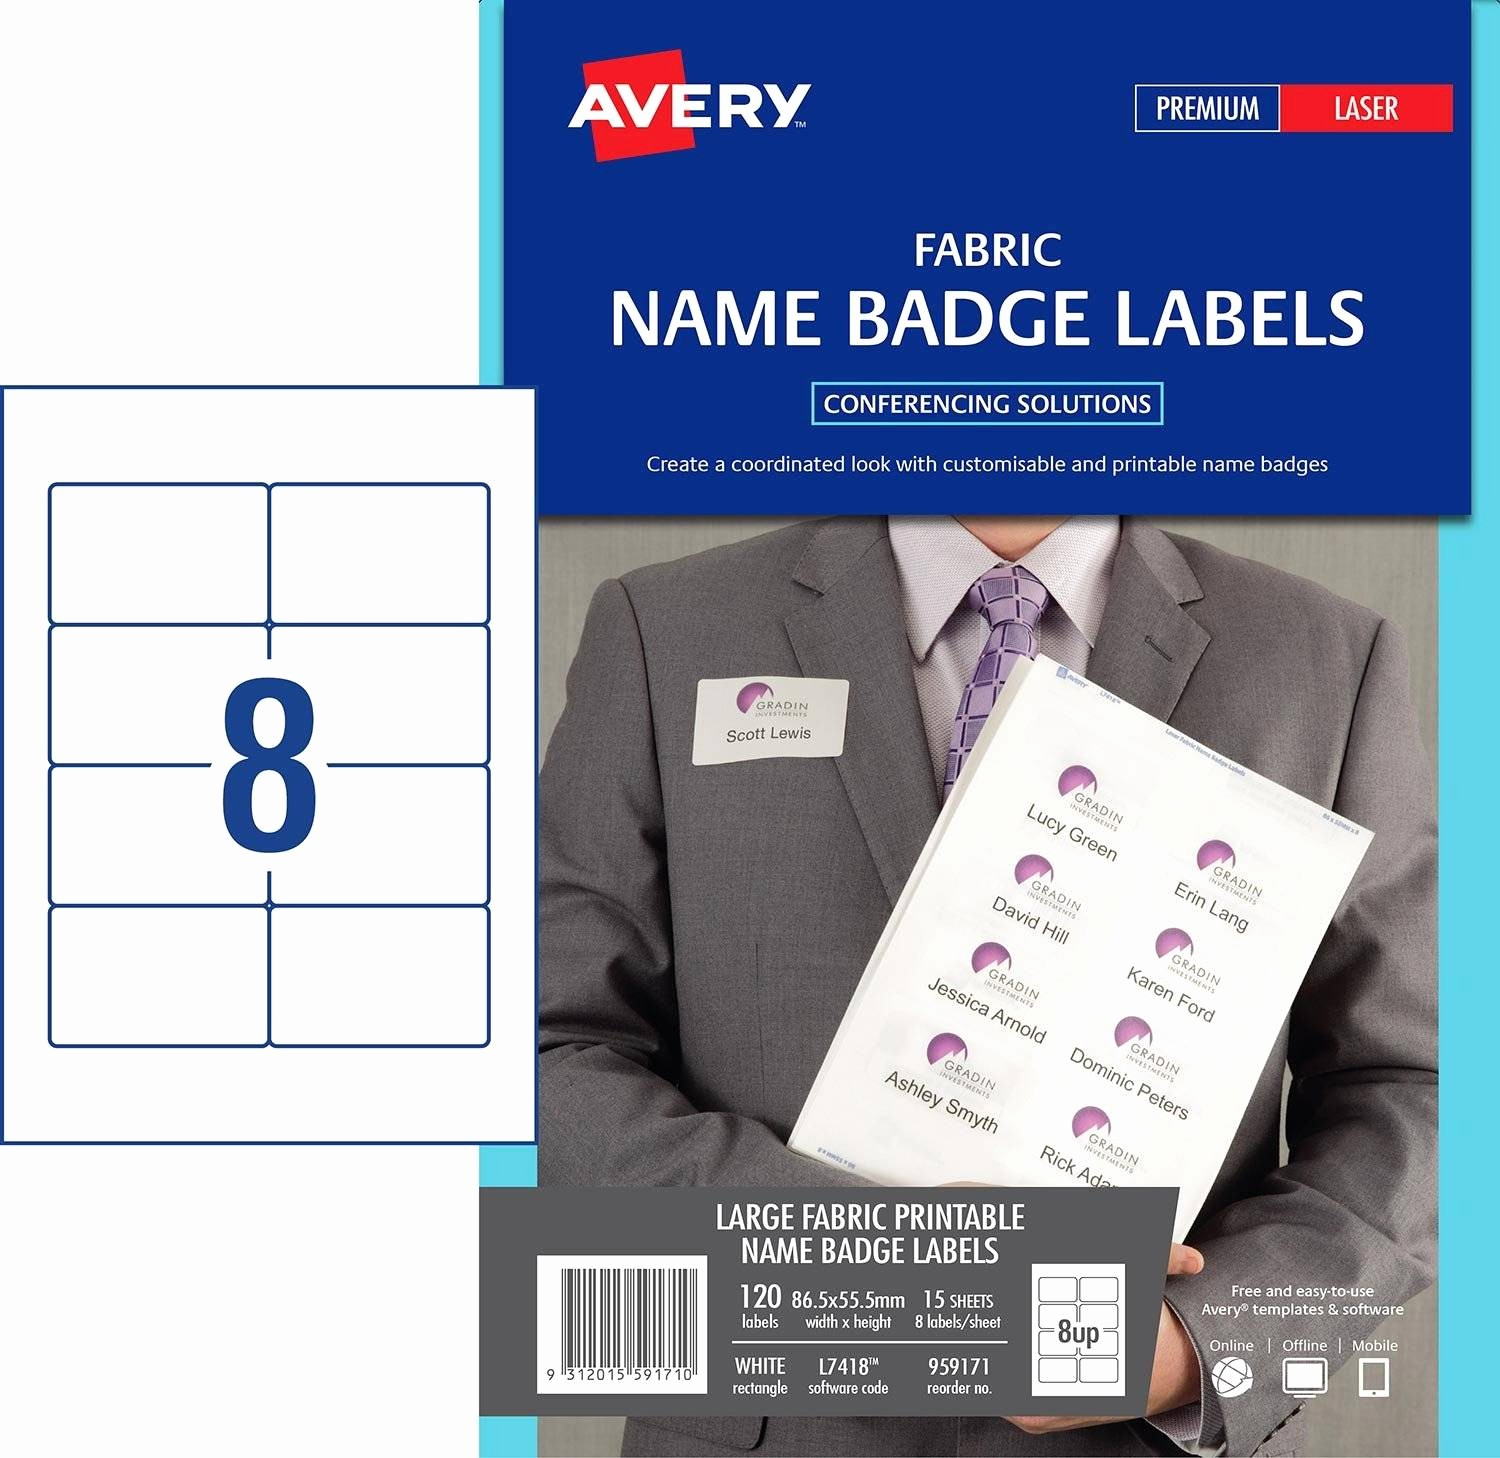 Avery Name Badge Labels Template Elegant Fabric Name Badge Labels